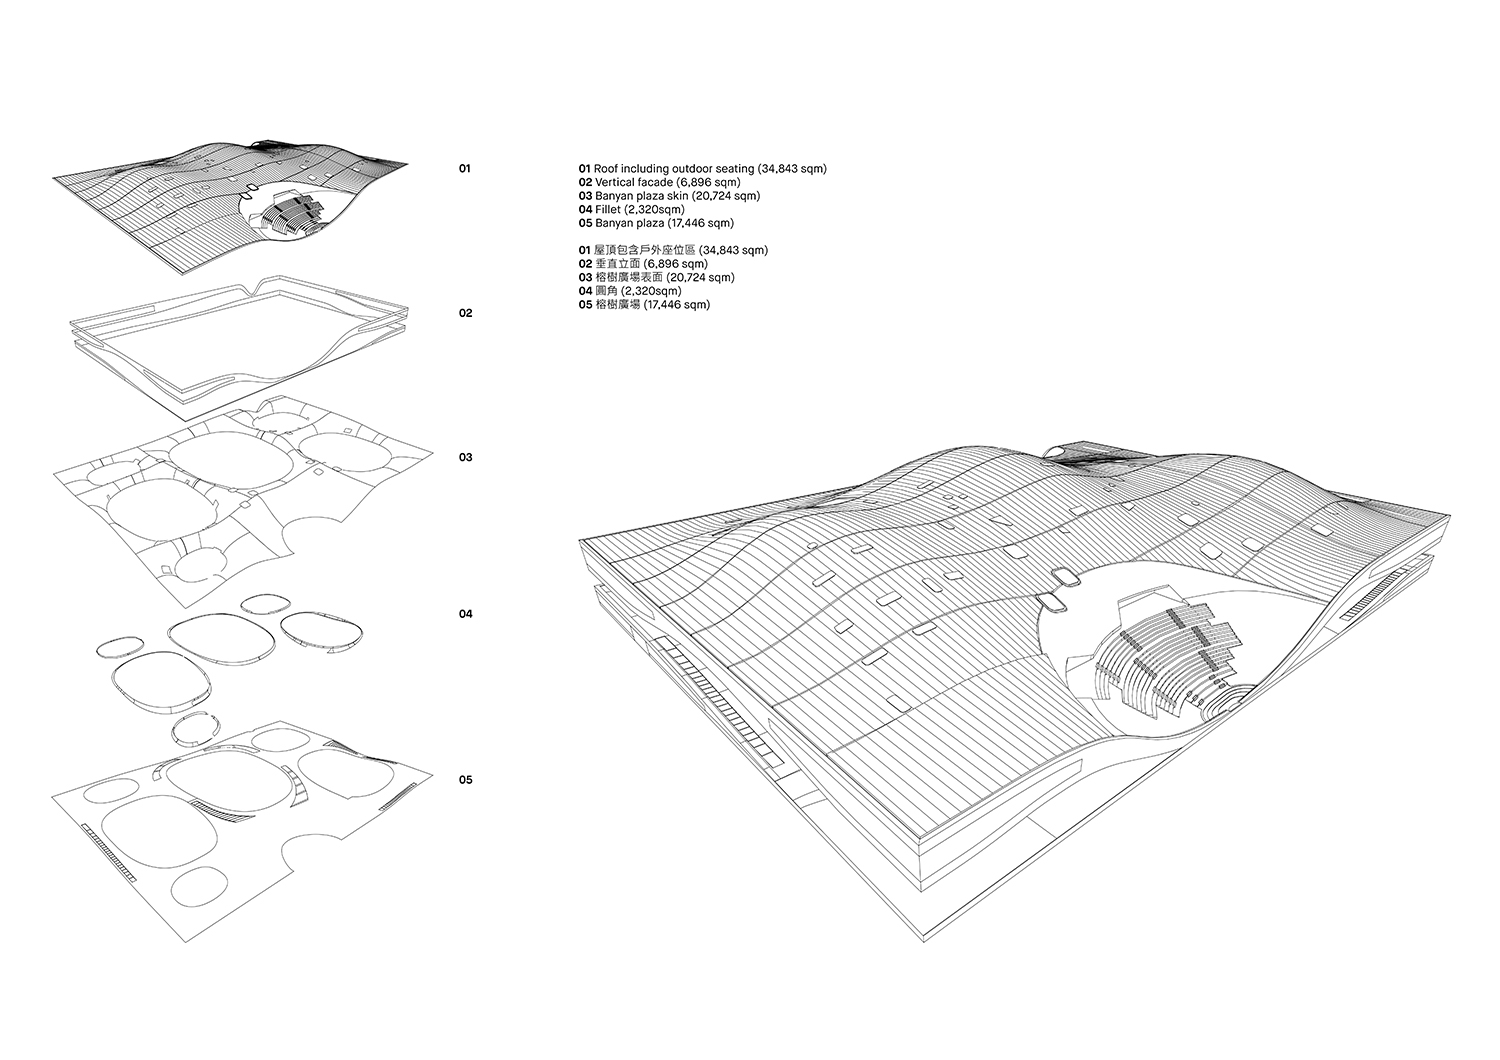 Architecture Surface Diagram Mecanoo}